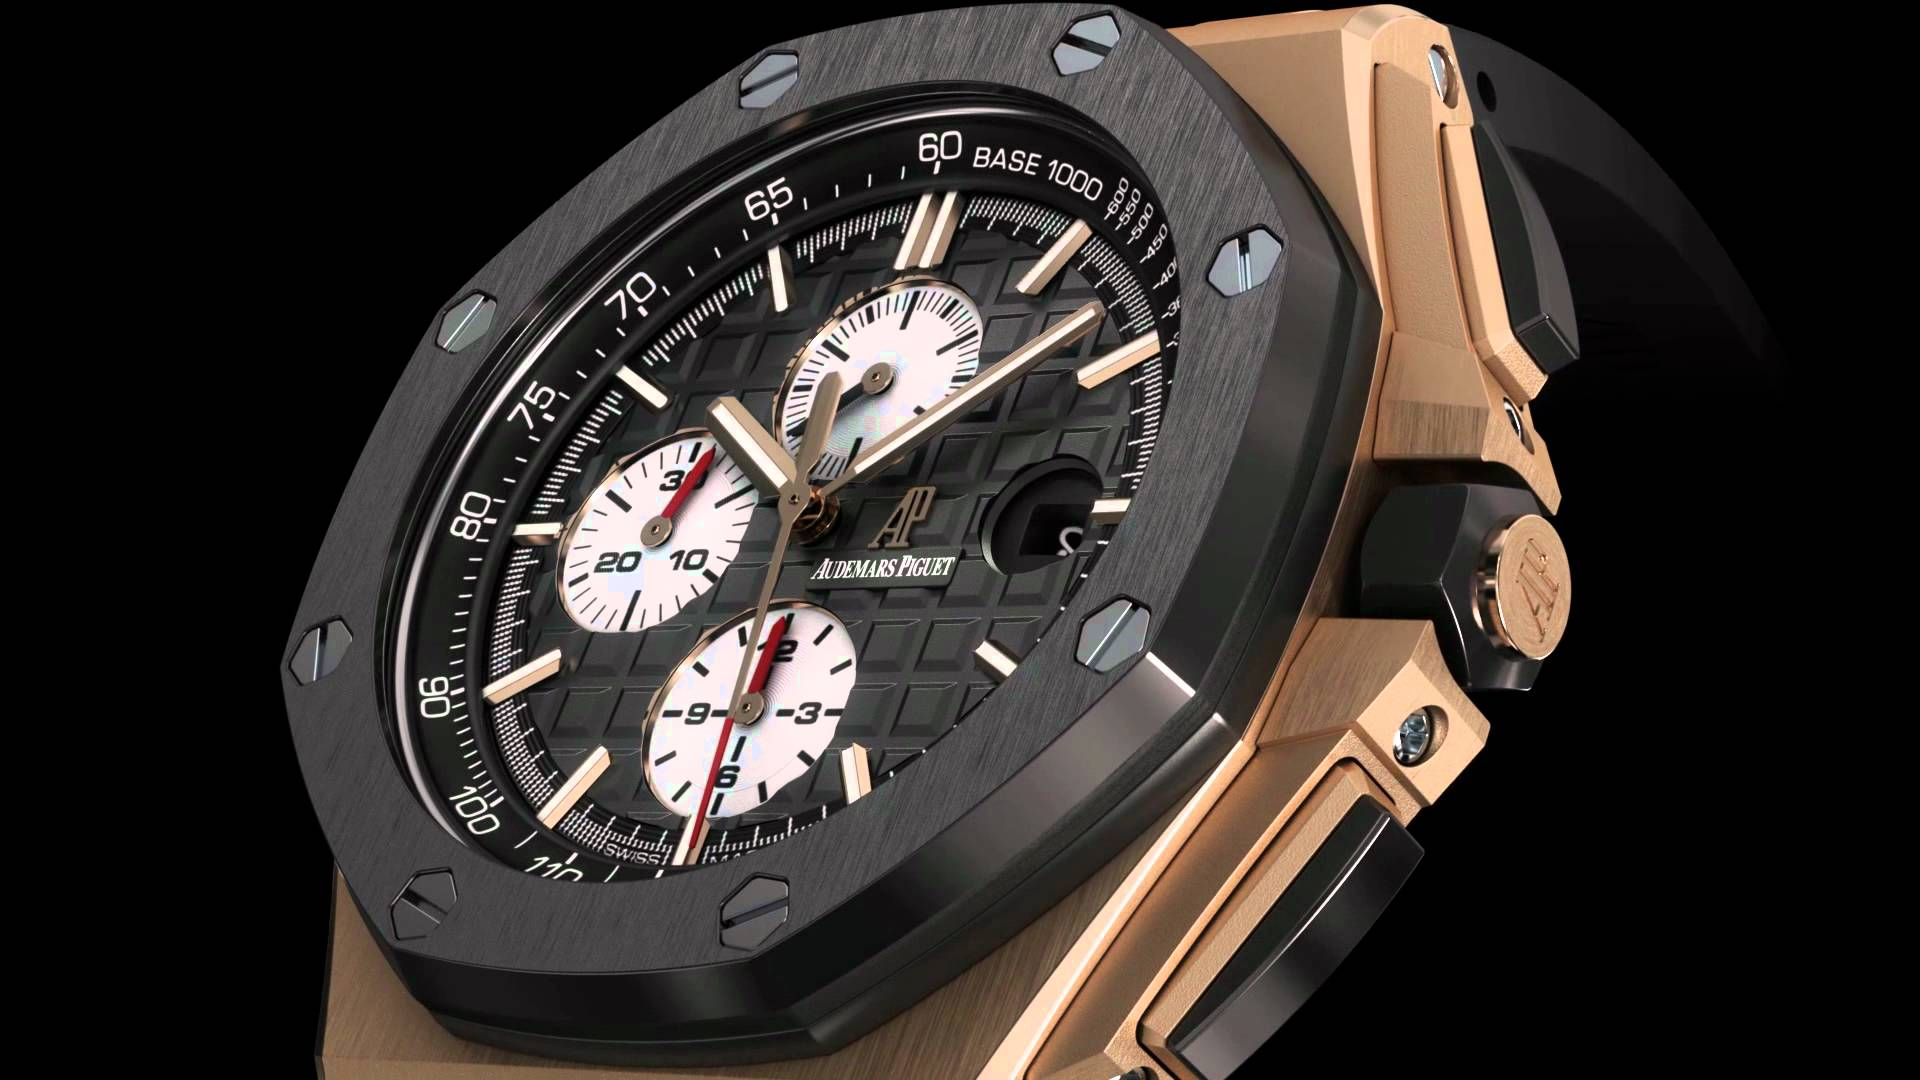 Audemar Piguet's Royal Oak Offshore 18kt Rose Gold & Ceramic Chronograph